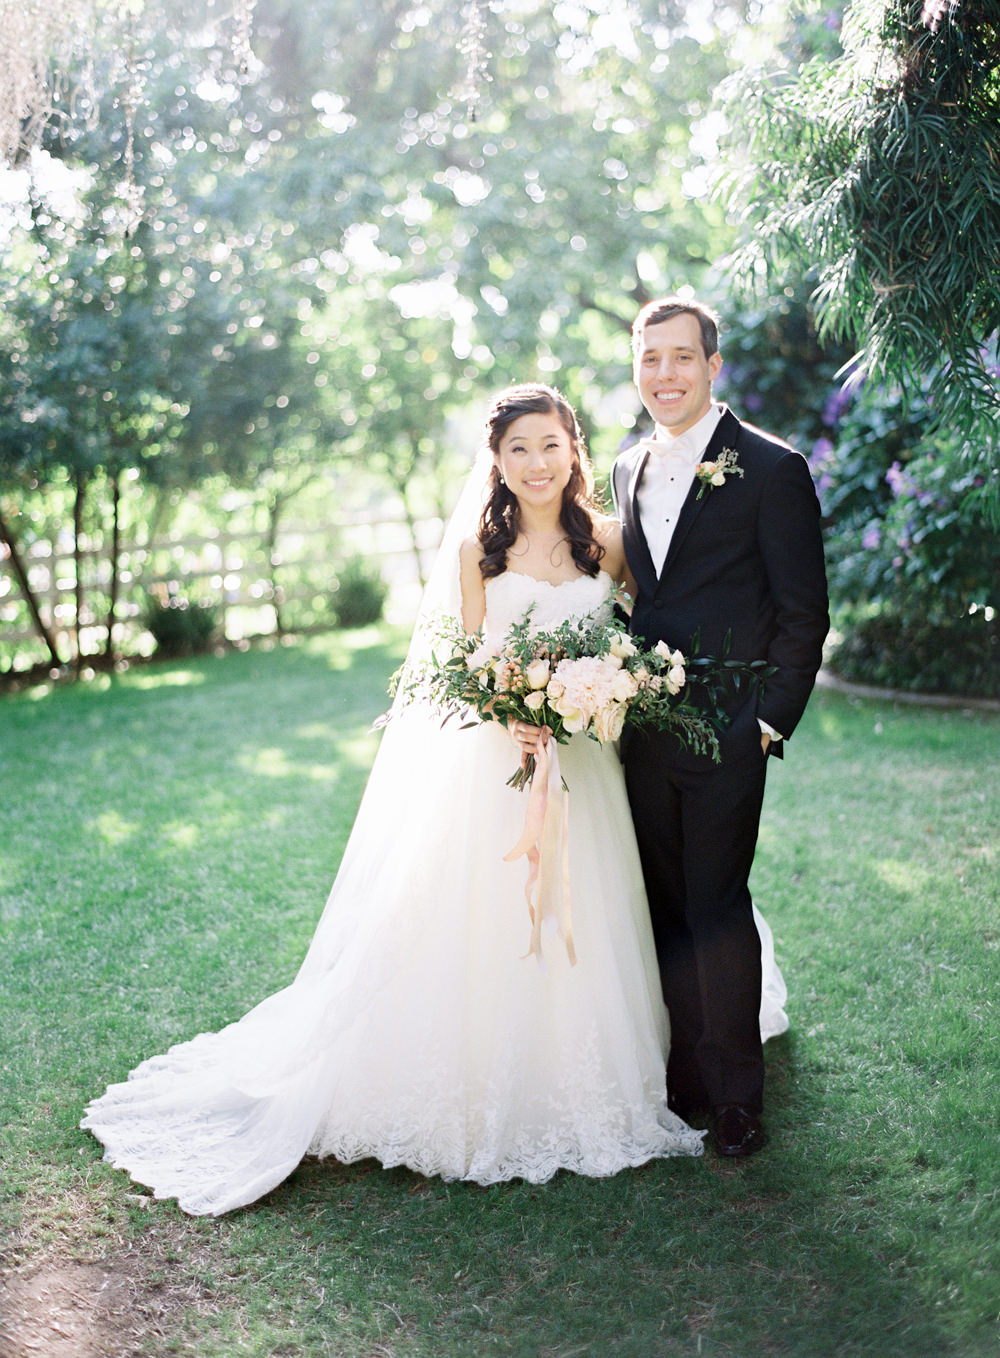 RomanticGardenWedding_WhiskersandWillow_086.jpg